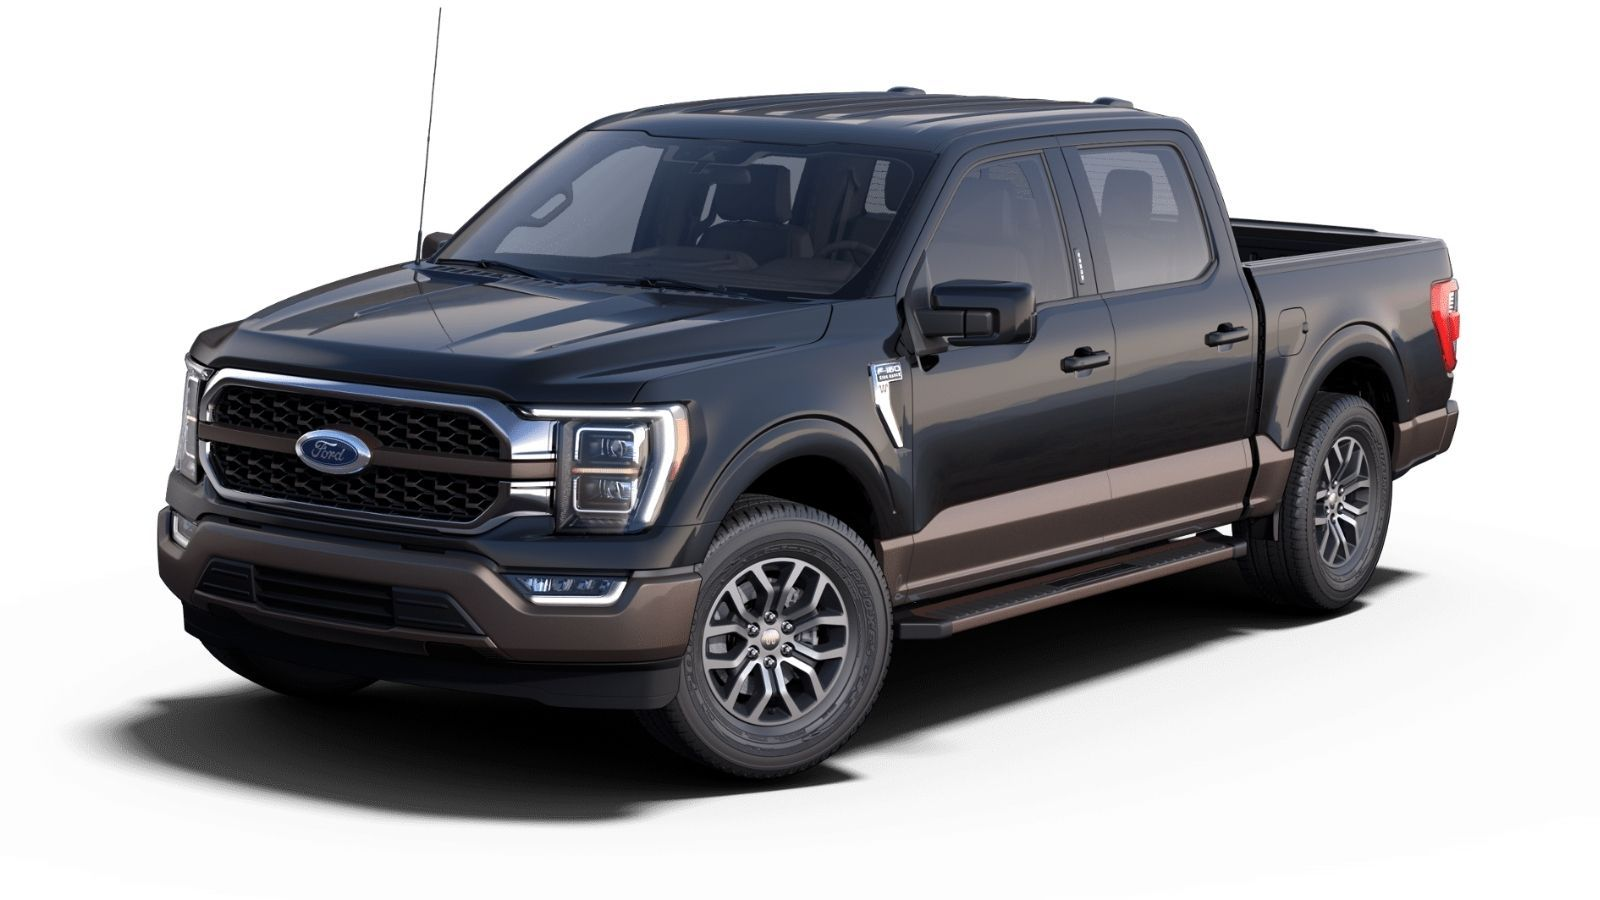 2021 Ford F-150 Pricing, Features, Models